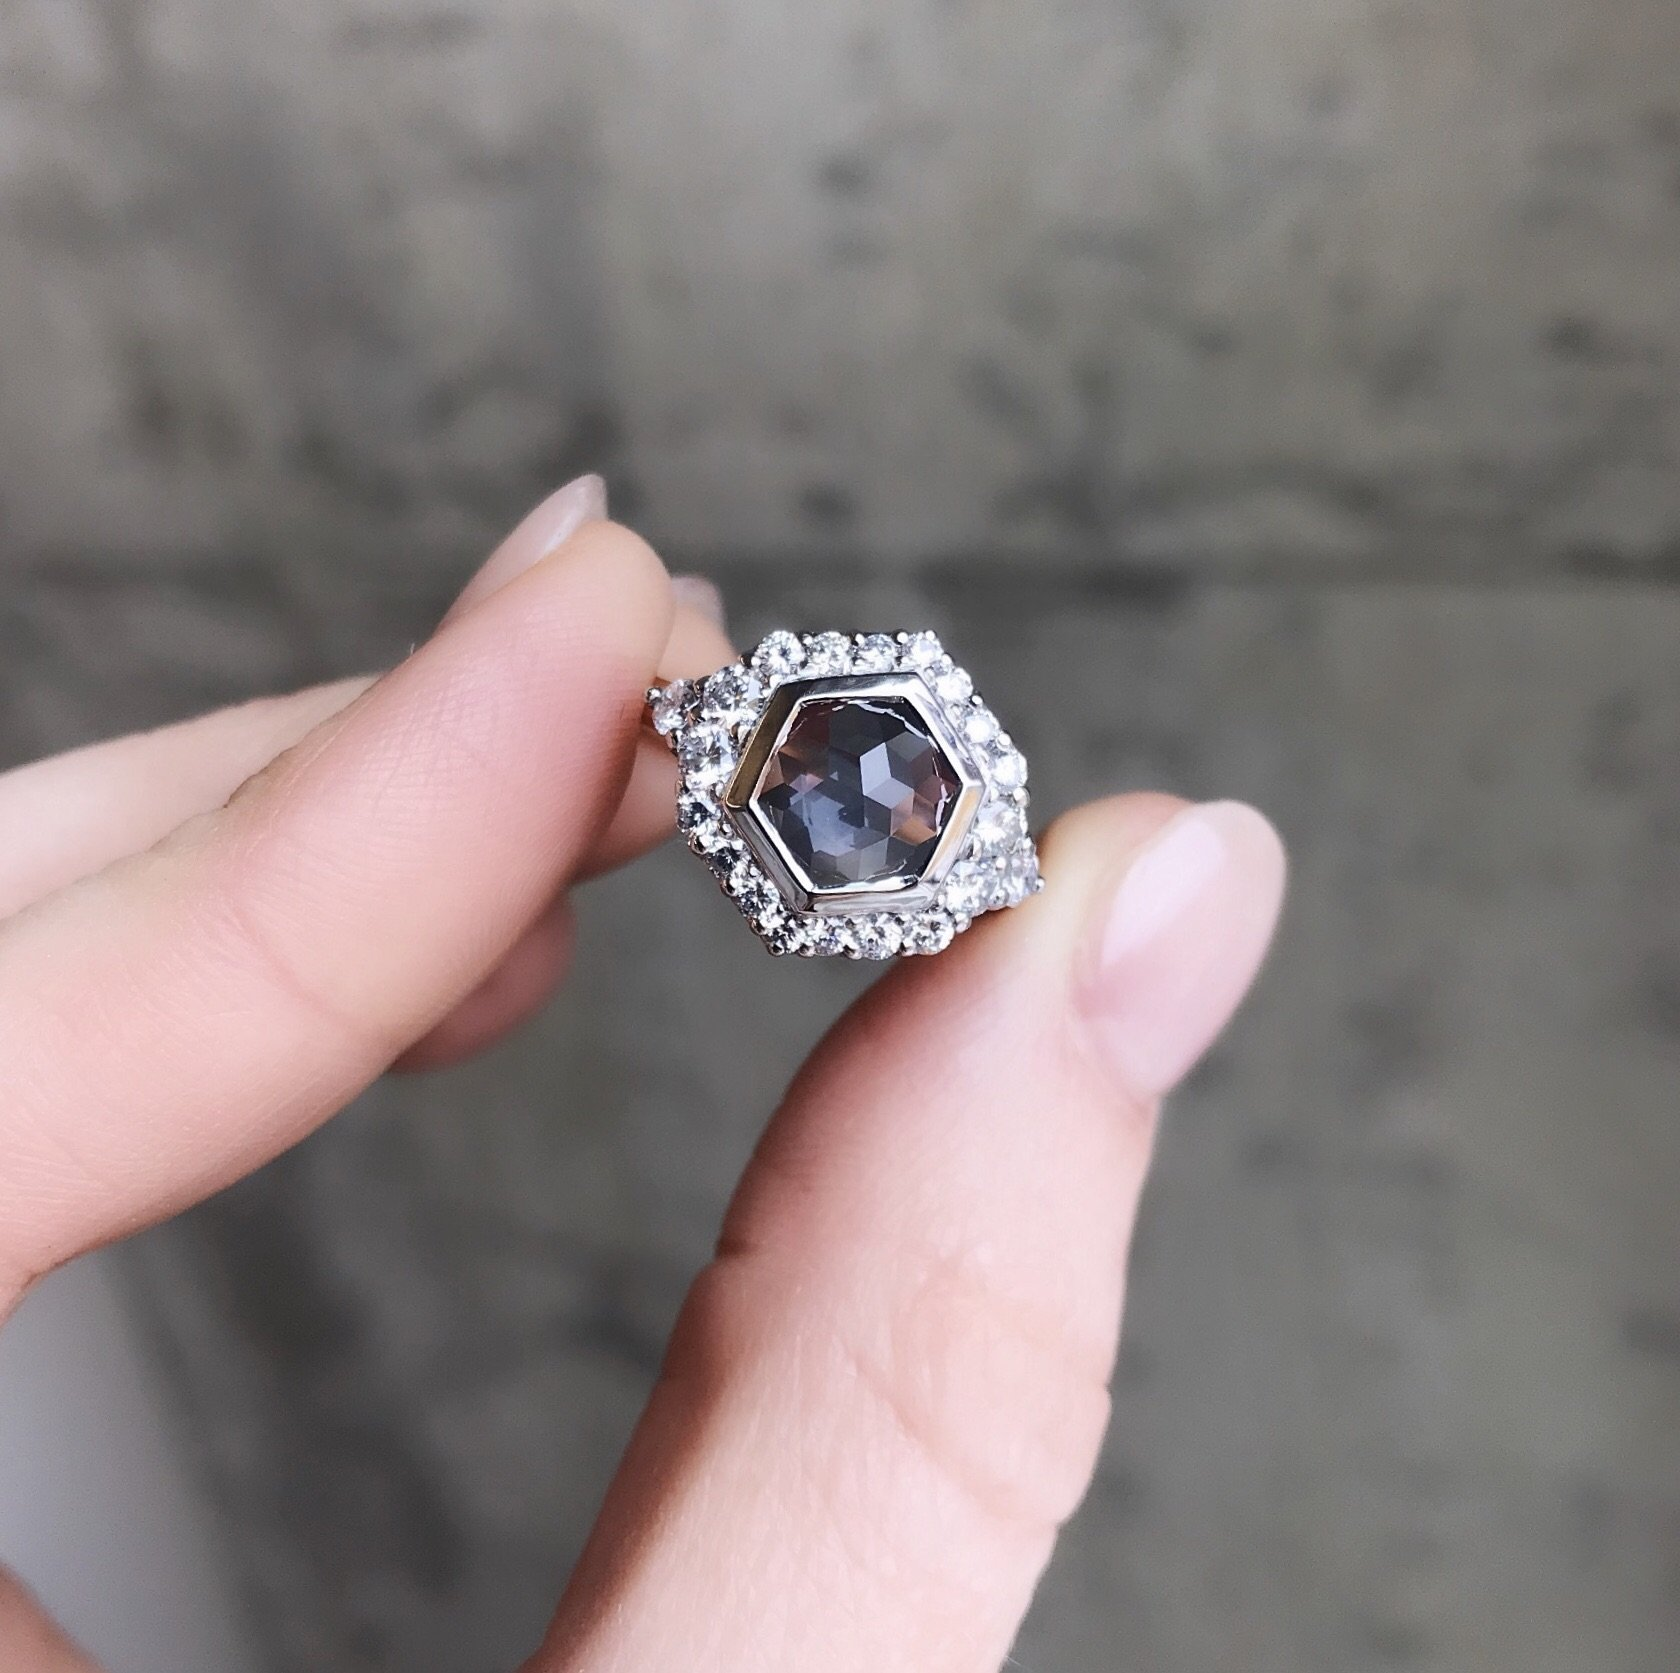 2 15ct Hexagon Rosecut Montana Sapphire Ring In Prong Set Halo With Tapered White Diamonds Bridal Fashion Jewelry Montana Sapphire Ring Bezel Engagement Ring